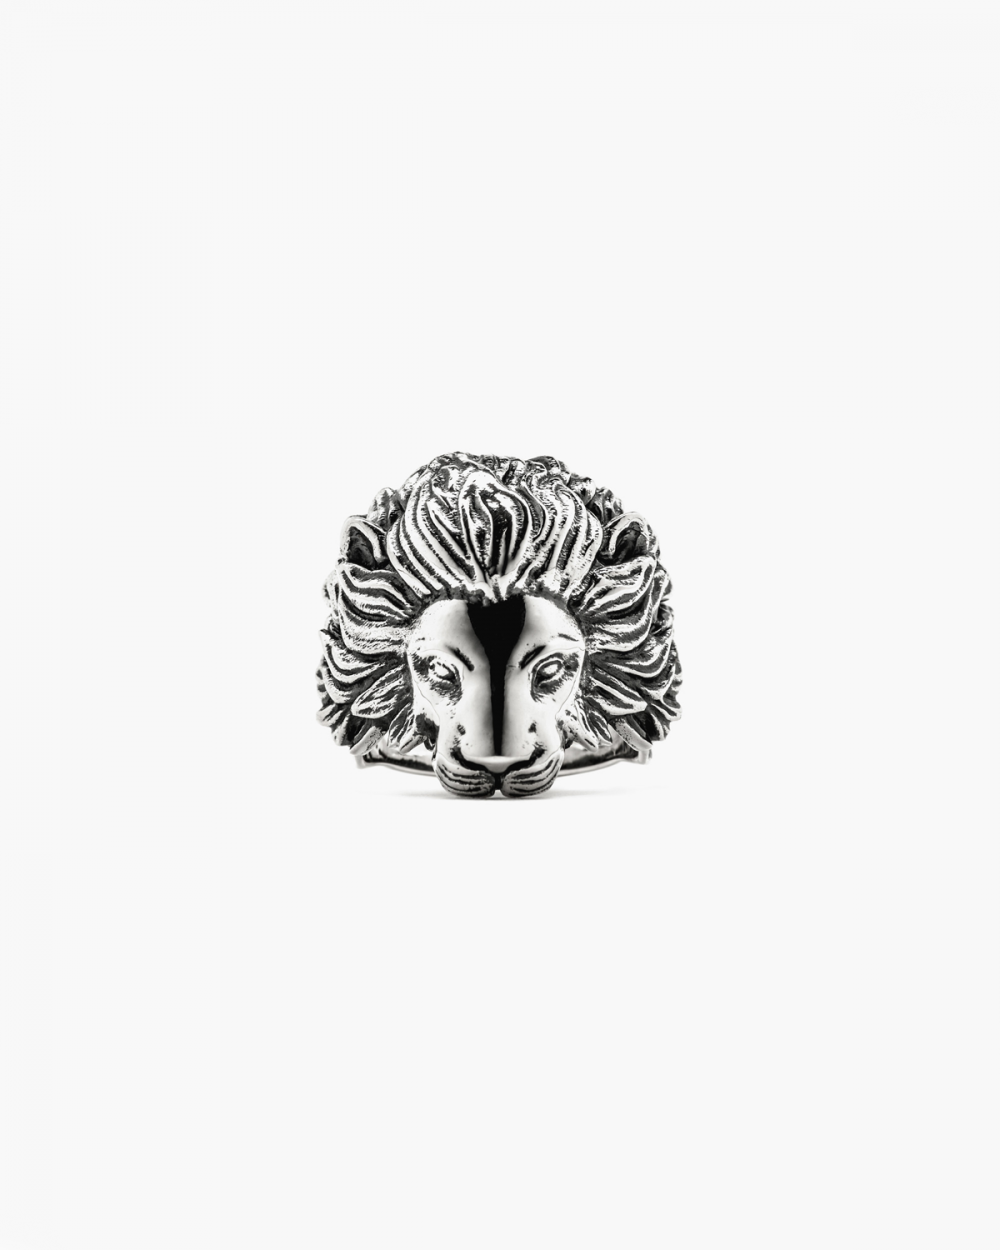 Archive Sale ROARING LION RING NOVE25